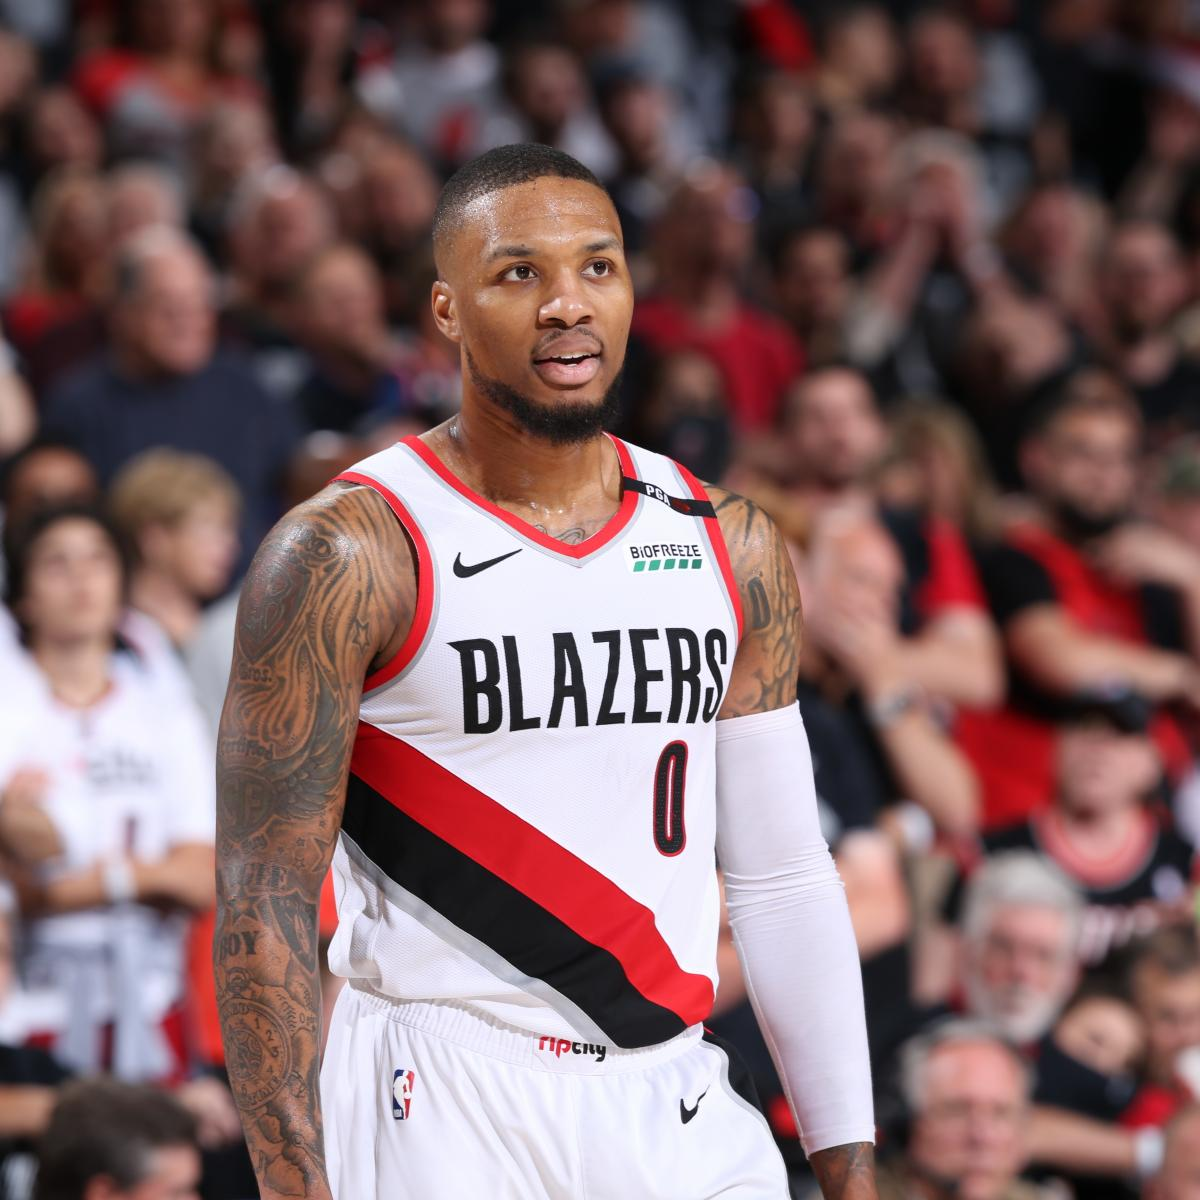 Nba Playoffs 2019 Nuggets Vs Trail Blazers Game 6 Tv: Damian Lillard Says He's Going To 'Get The Job Done' In